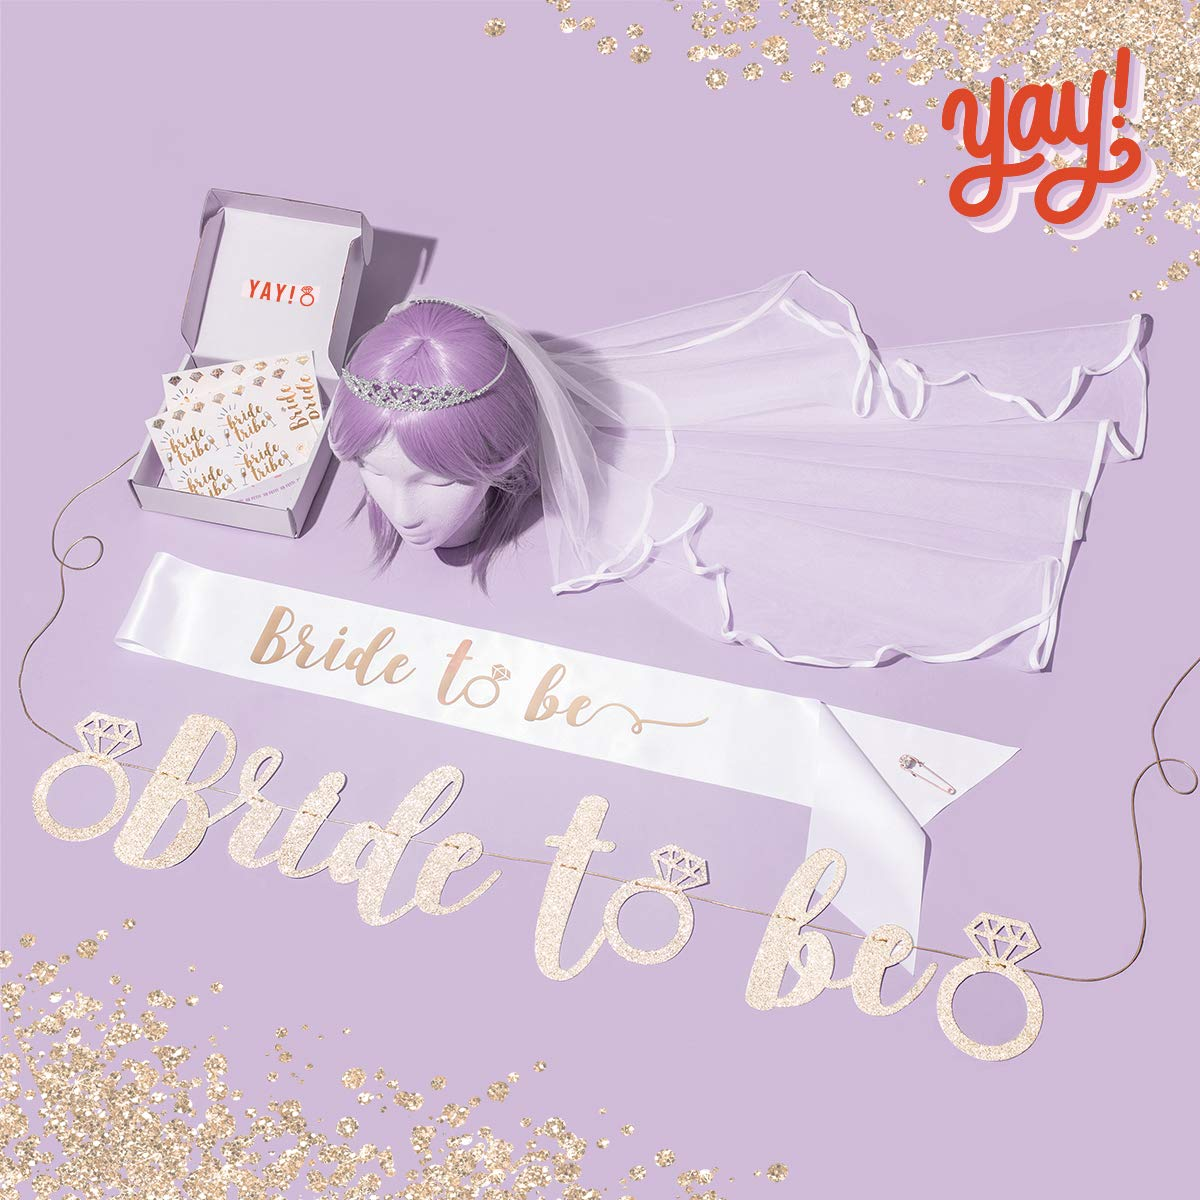 xo, Fetti Bachelorette Party Bride To Be Decorations Kit - Bridal Shower Decorations | Sash For Bride, Rhinestone Tiara, Gold Glitter Banner, Veil + Bride Tribe Flash Tattoos